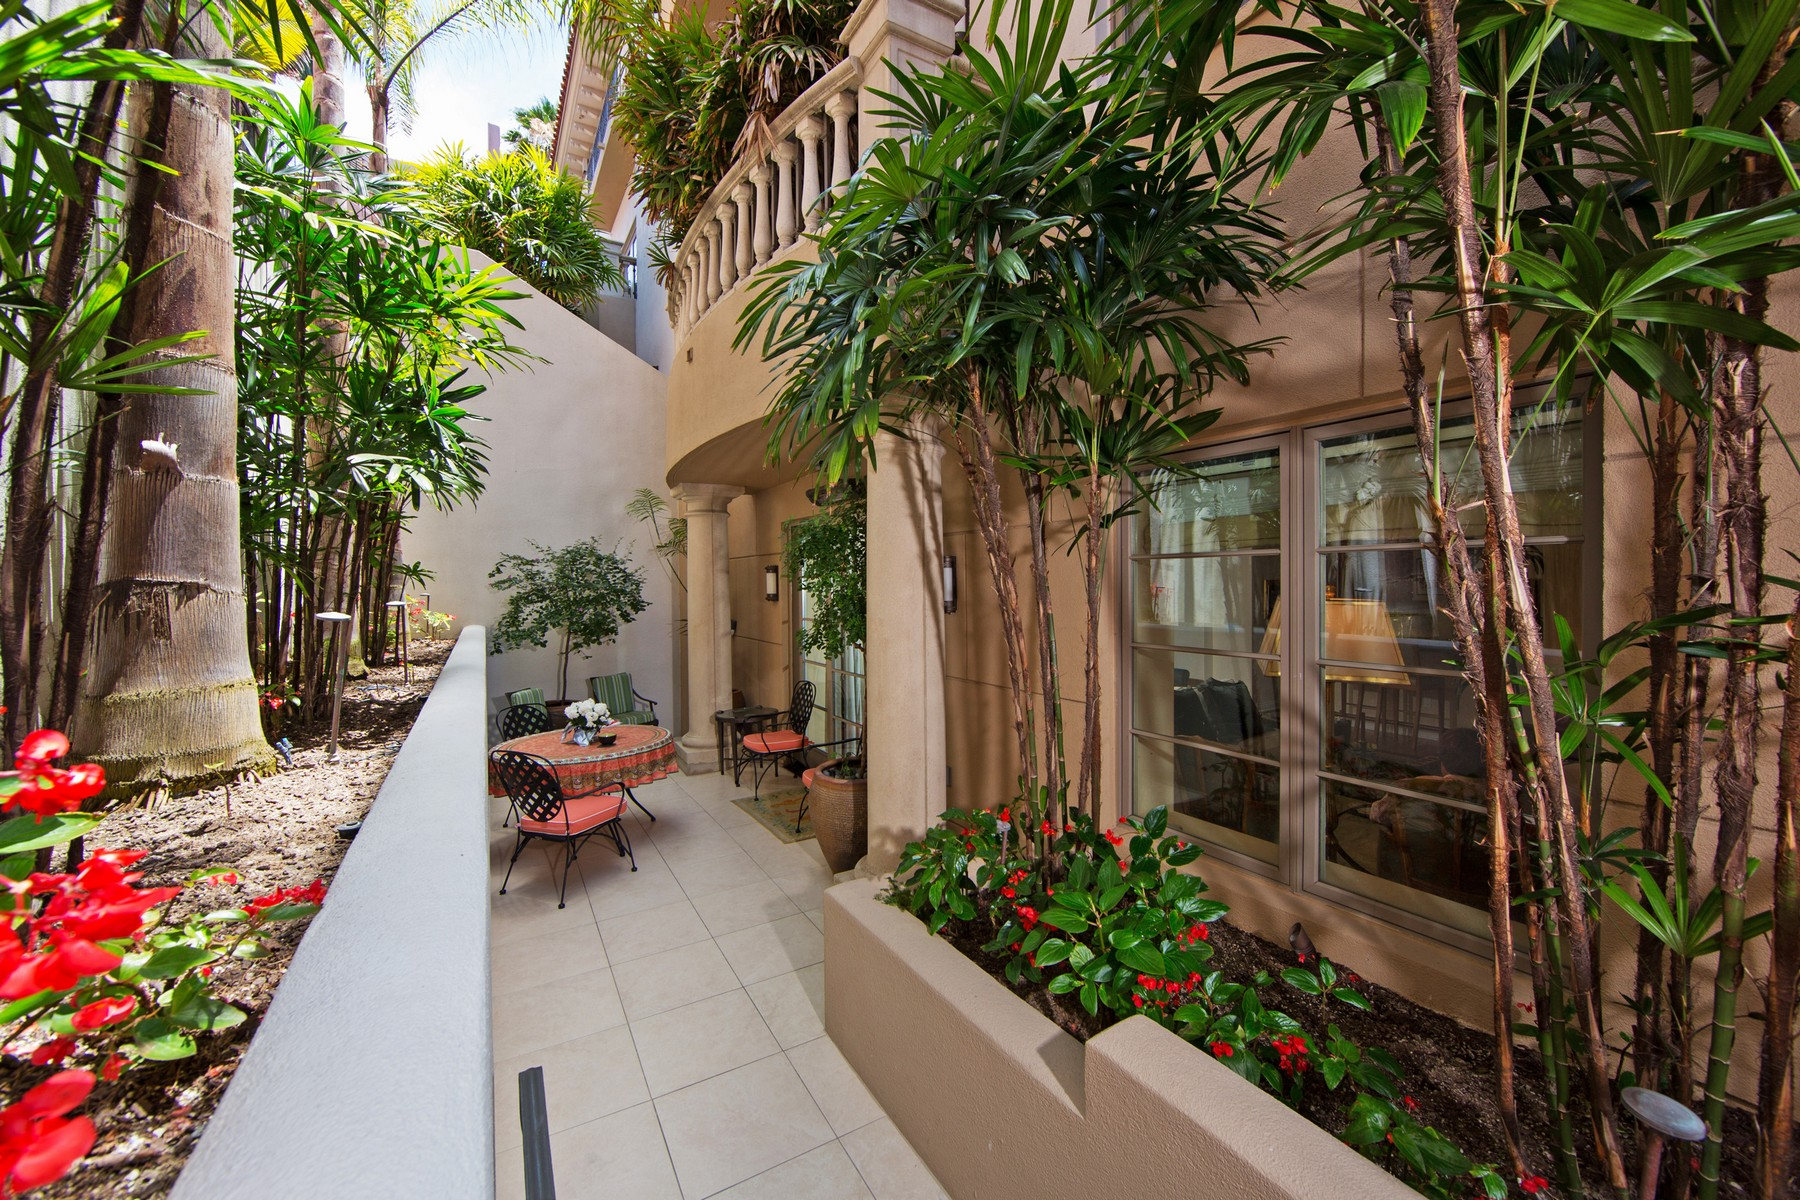 Additional photo for property listing at 464 Prospect Street, Unit 403 464 Prospect Street 403 La Jolla, Californie 92037 États-Unis